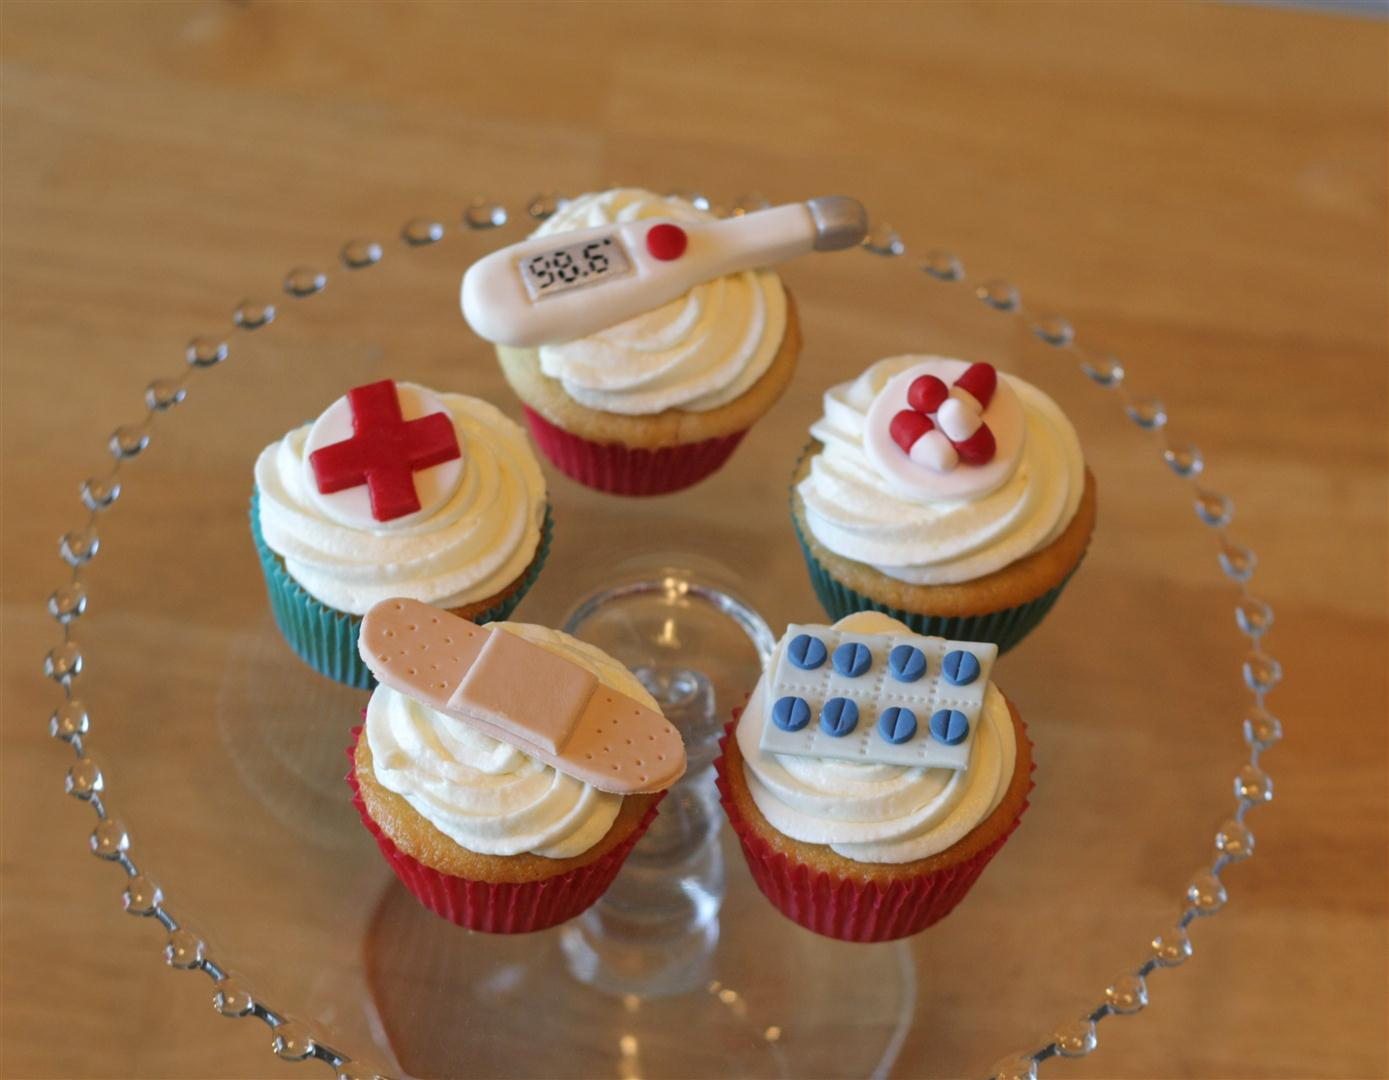 Cake Mix Doctor Birthday Cupcakes Image Inspiration of Cake and